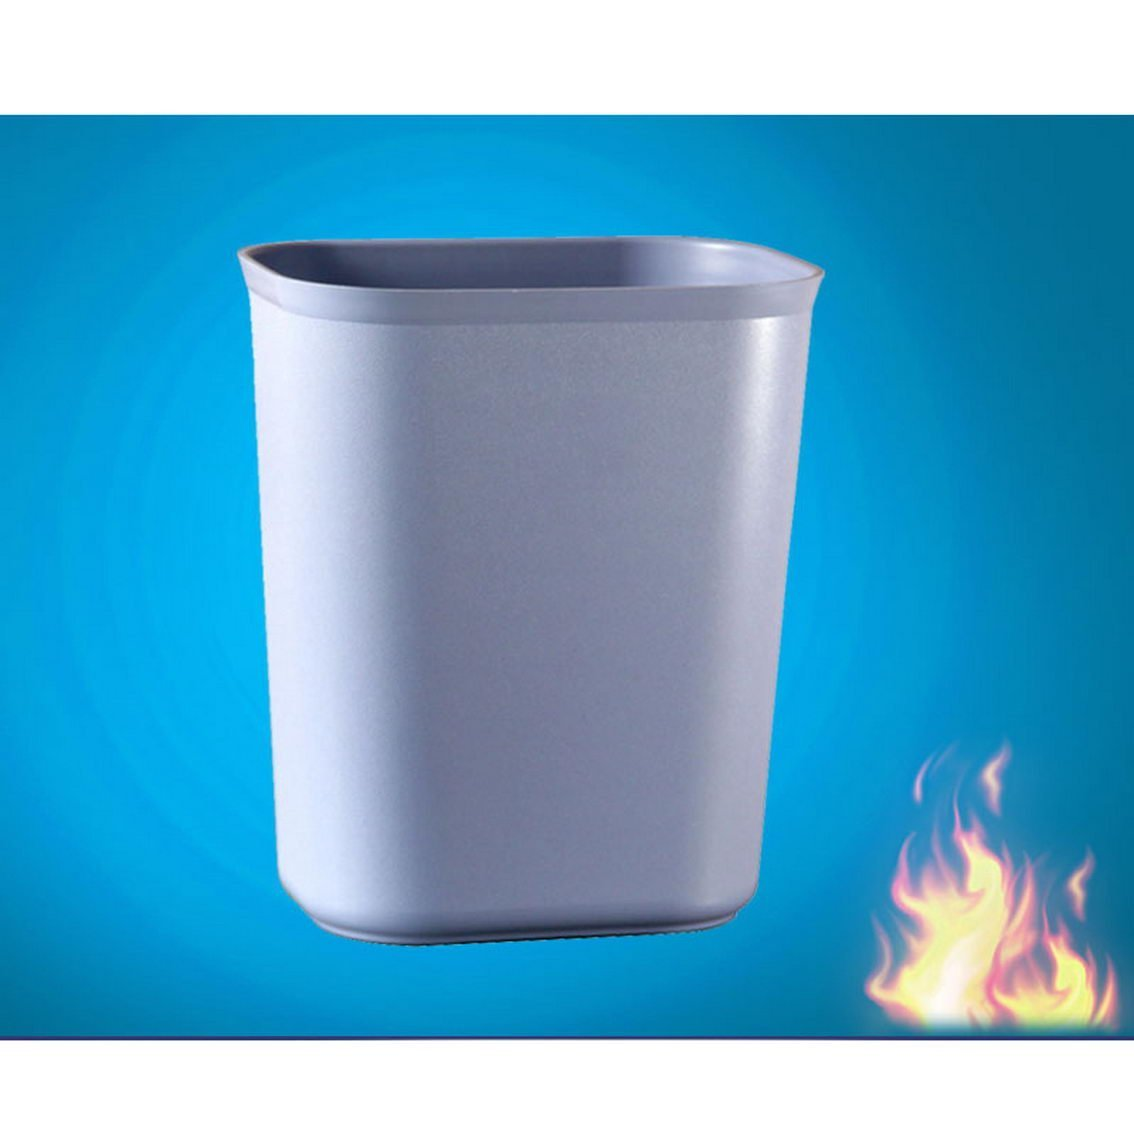 jii2030shann Hotels trash hotel rooms room fire-retardant plastic trash thickening square office room plastic trash bin trash can plastic square rectangular plastic trash